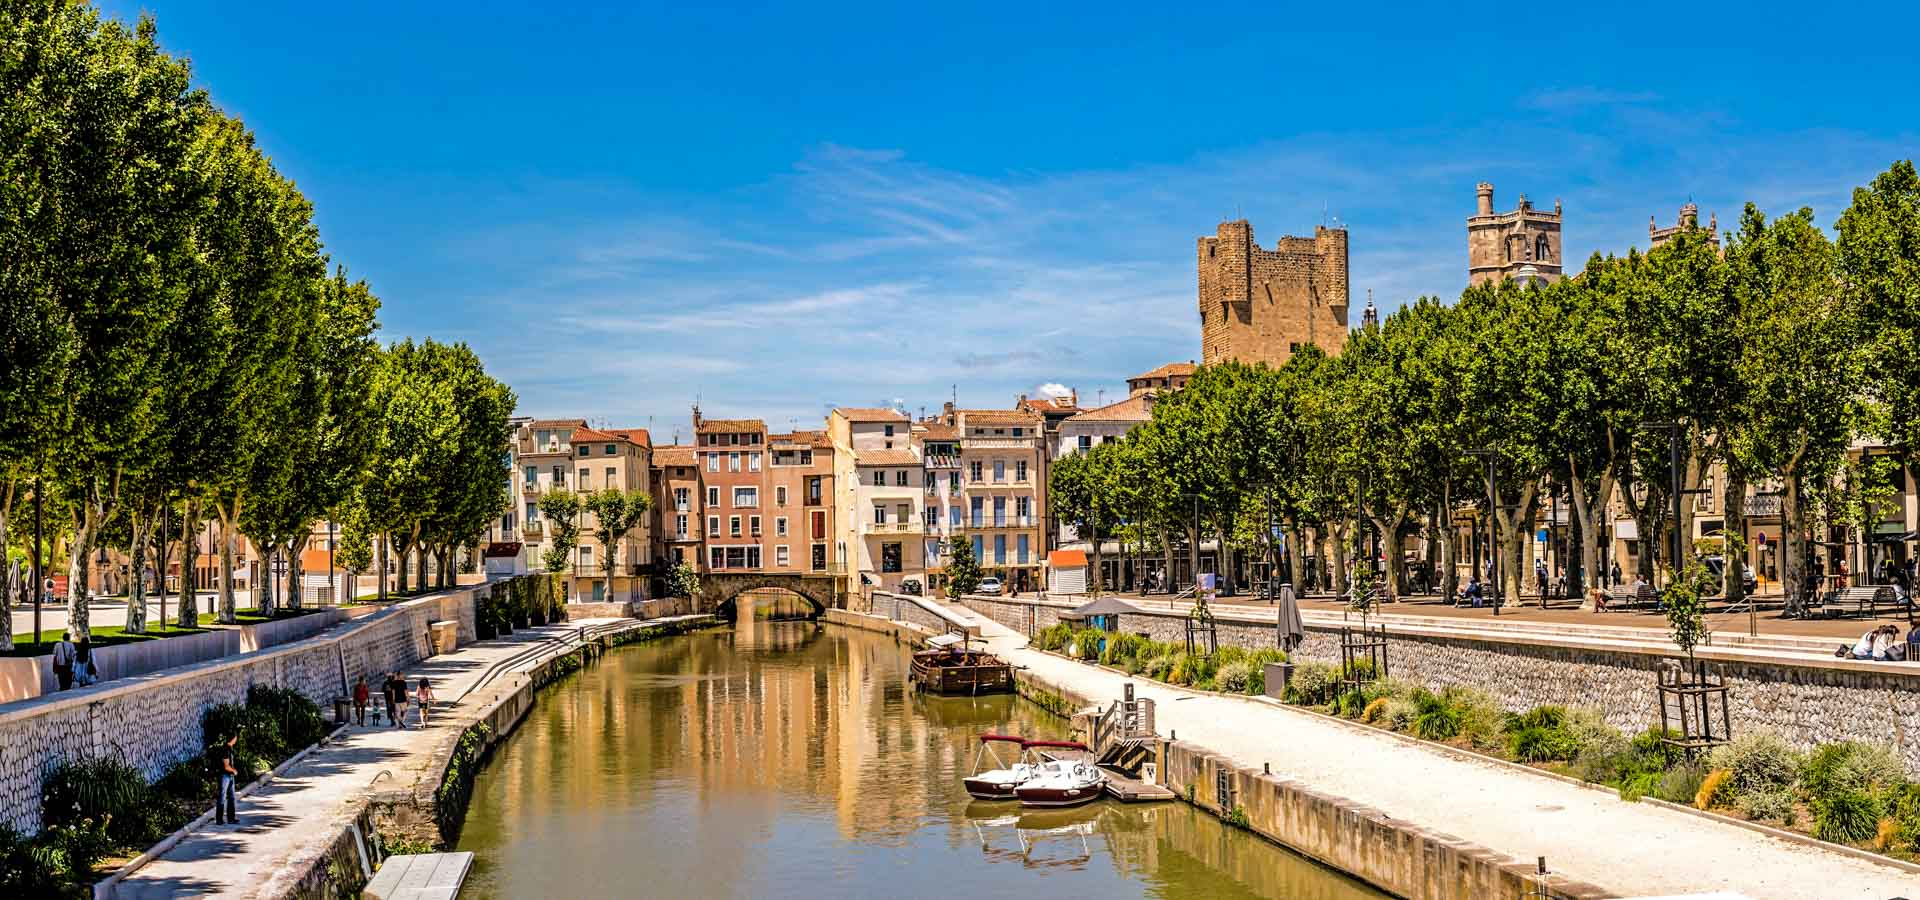 Cycling holiday along the Canal du Midi - Cycle Canal du Midi   Inntravel